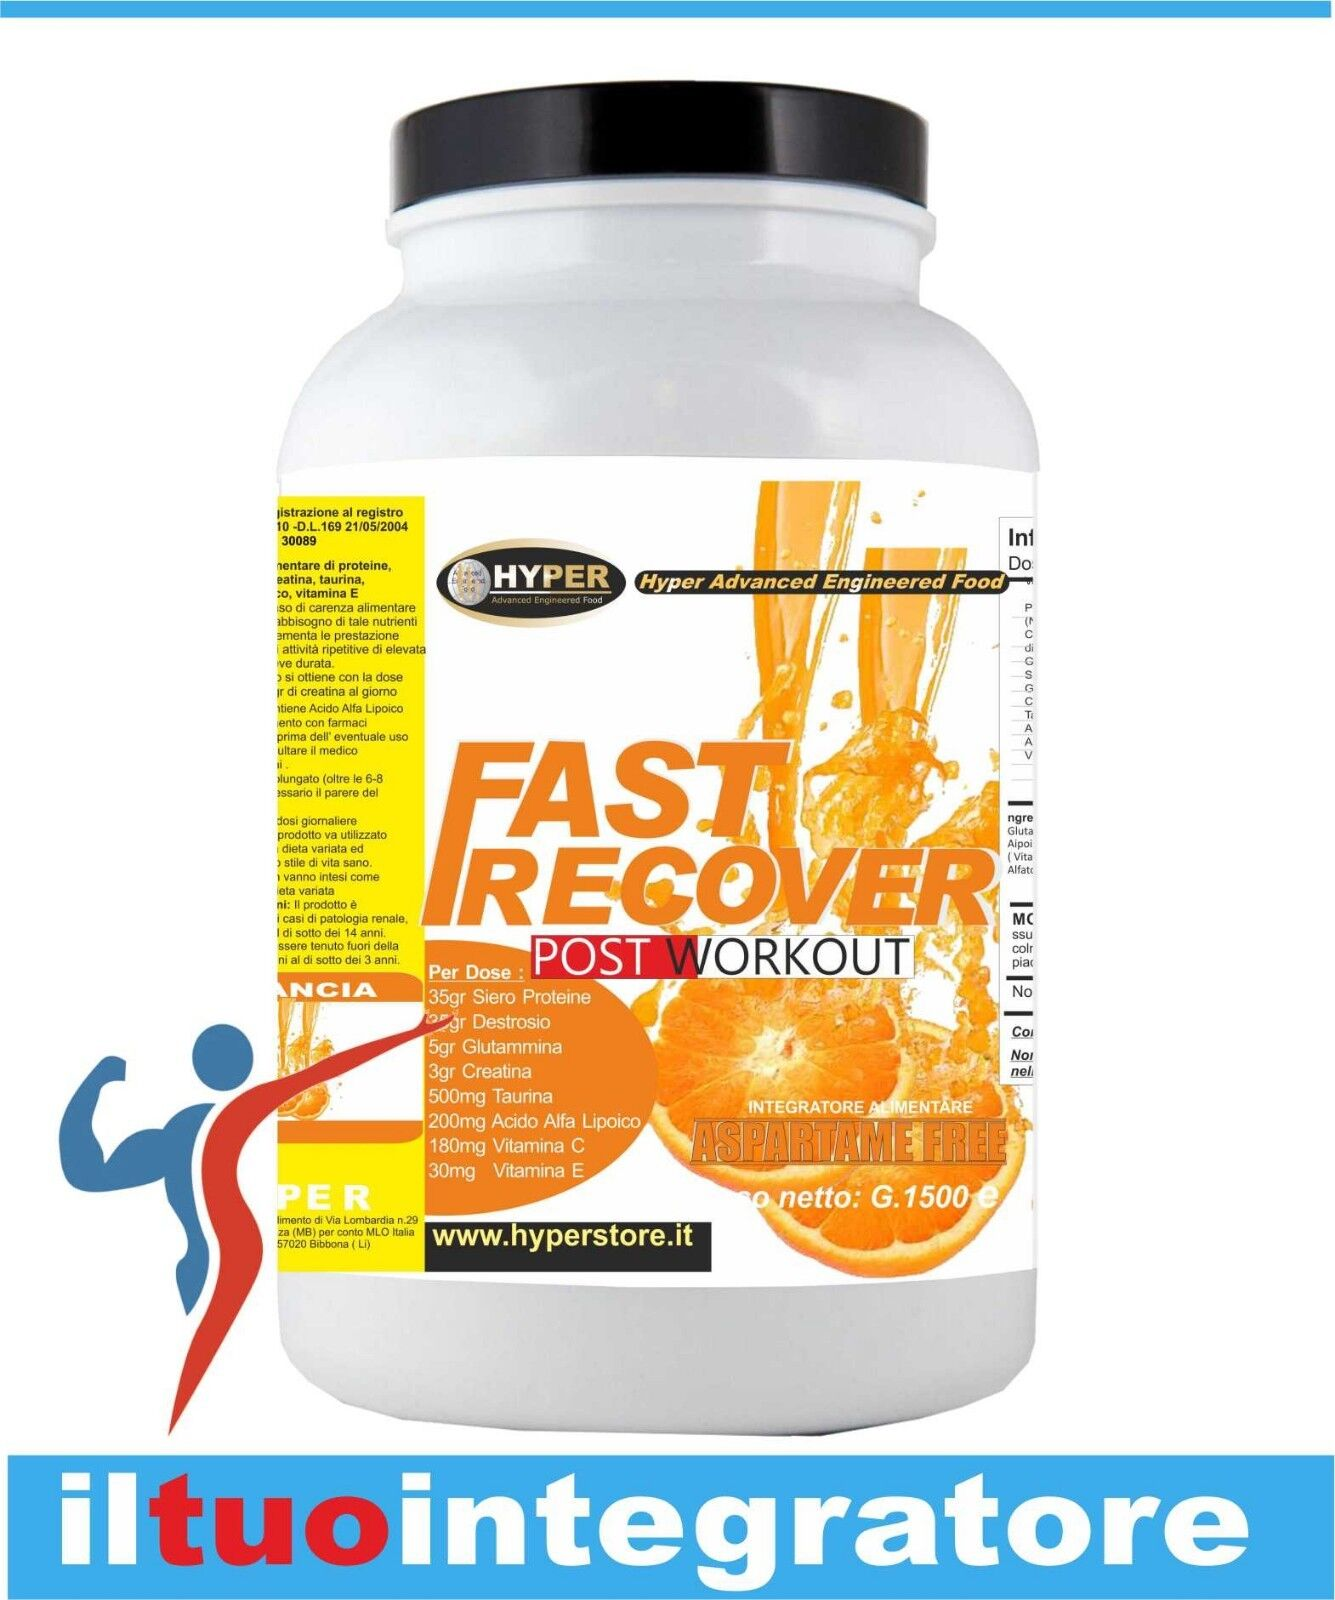 Recupero Muscolare Post Workout Integratori Ciclismo Prougeeine  Creatina  gr 3000